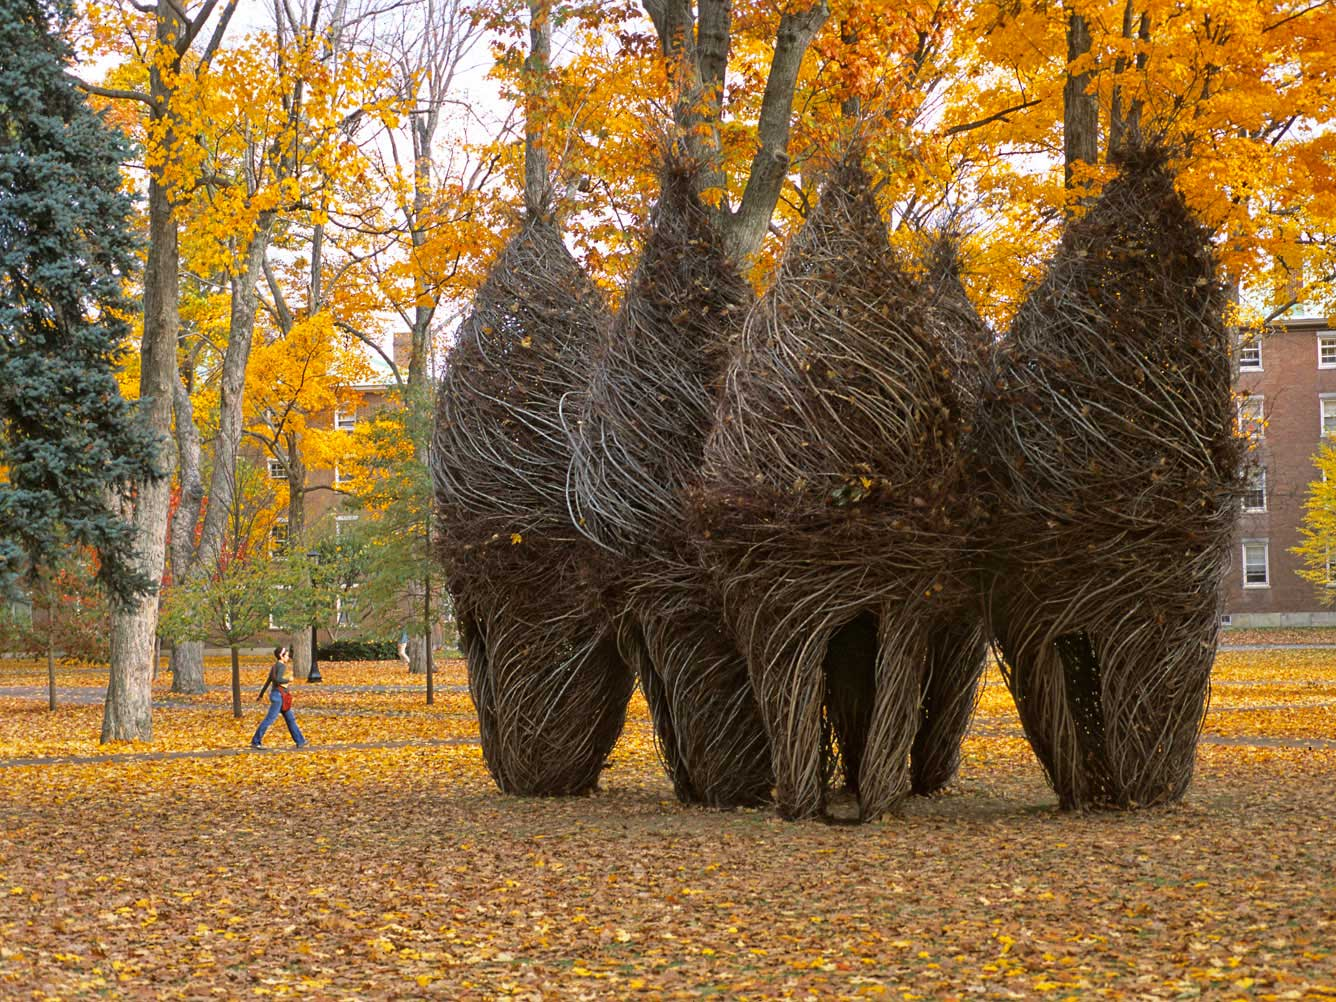 Simple Pleasures, Patrick Dougherty